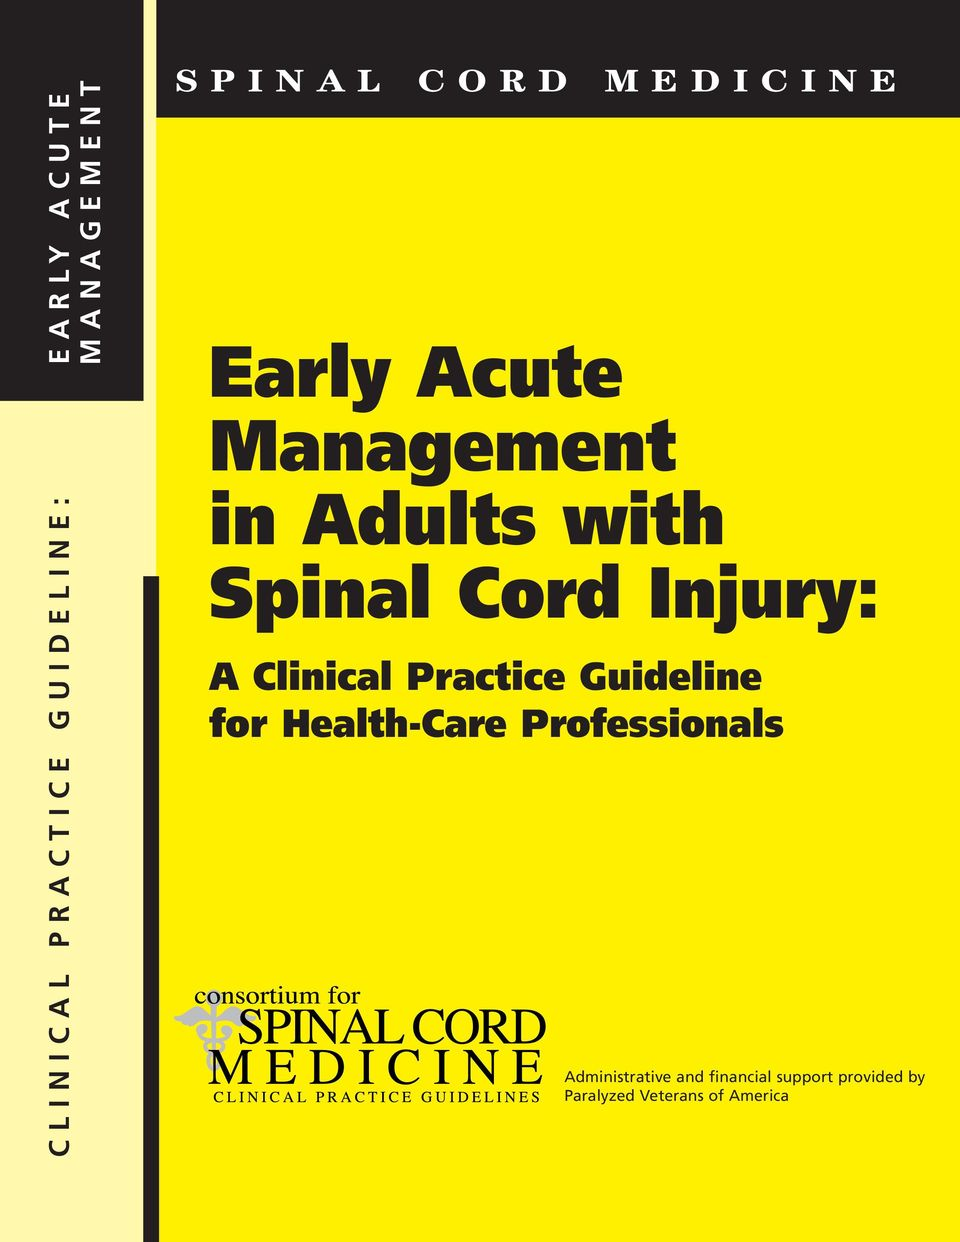 with Spinal Cord Injury: A Clinical Practice Guideline for Health-Care